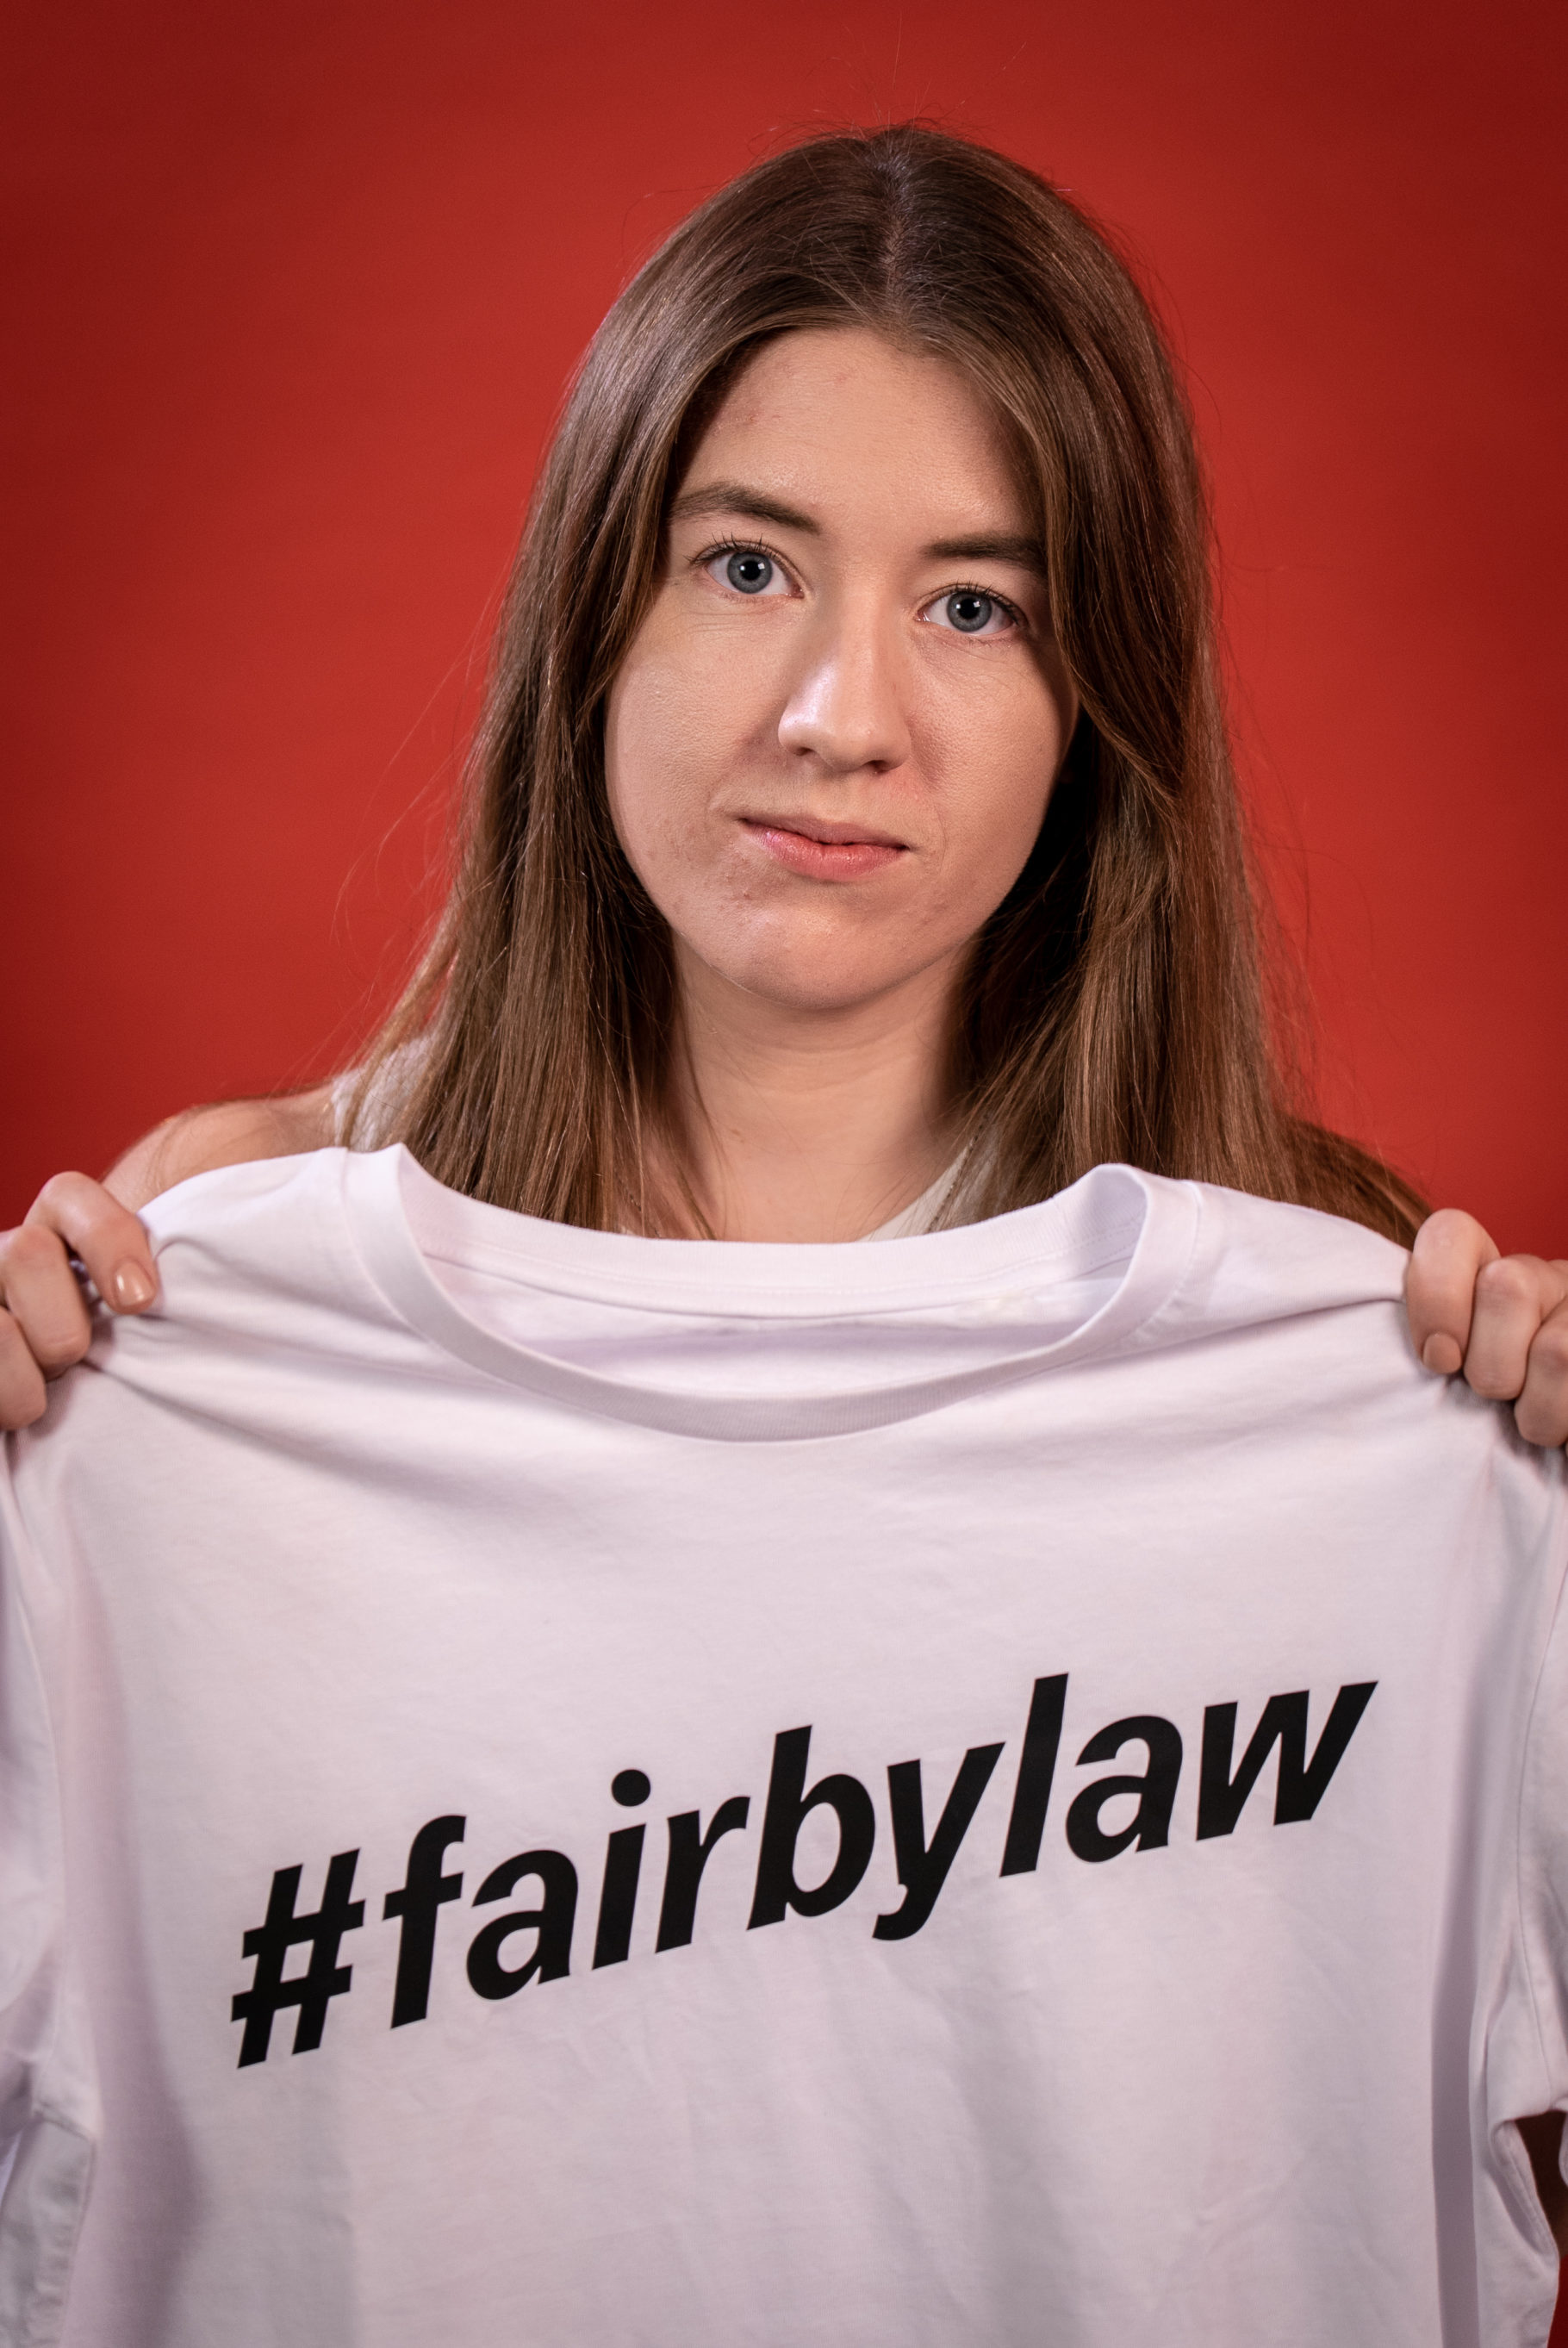 PETITION | TRAGT VERANTWORTUNG #FAIRBYLAW